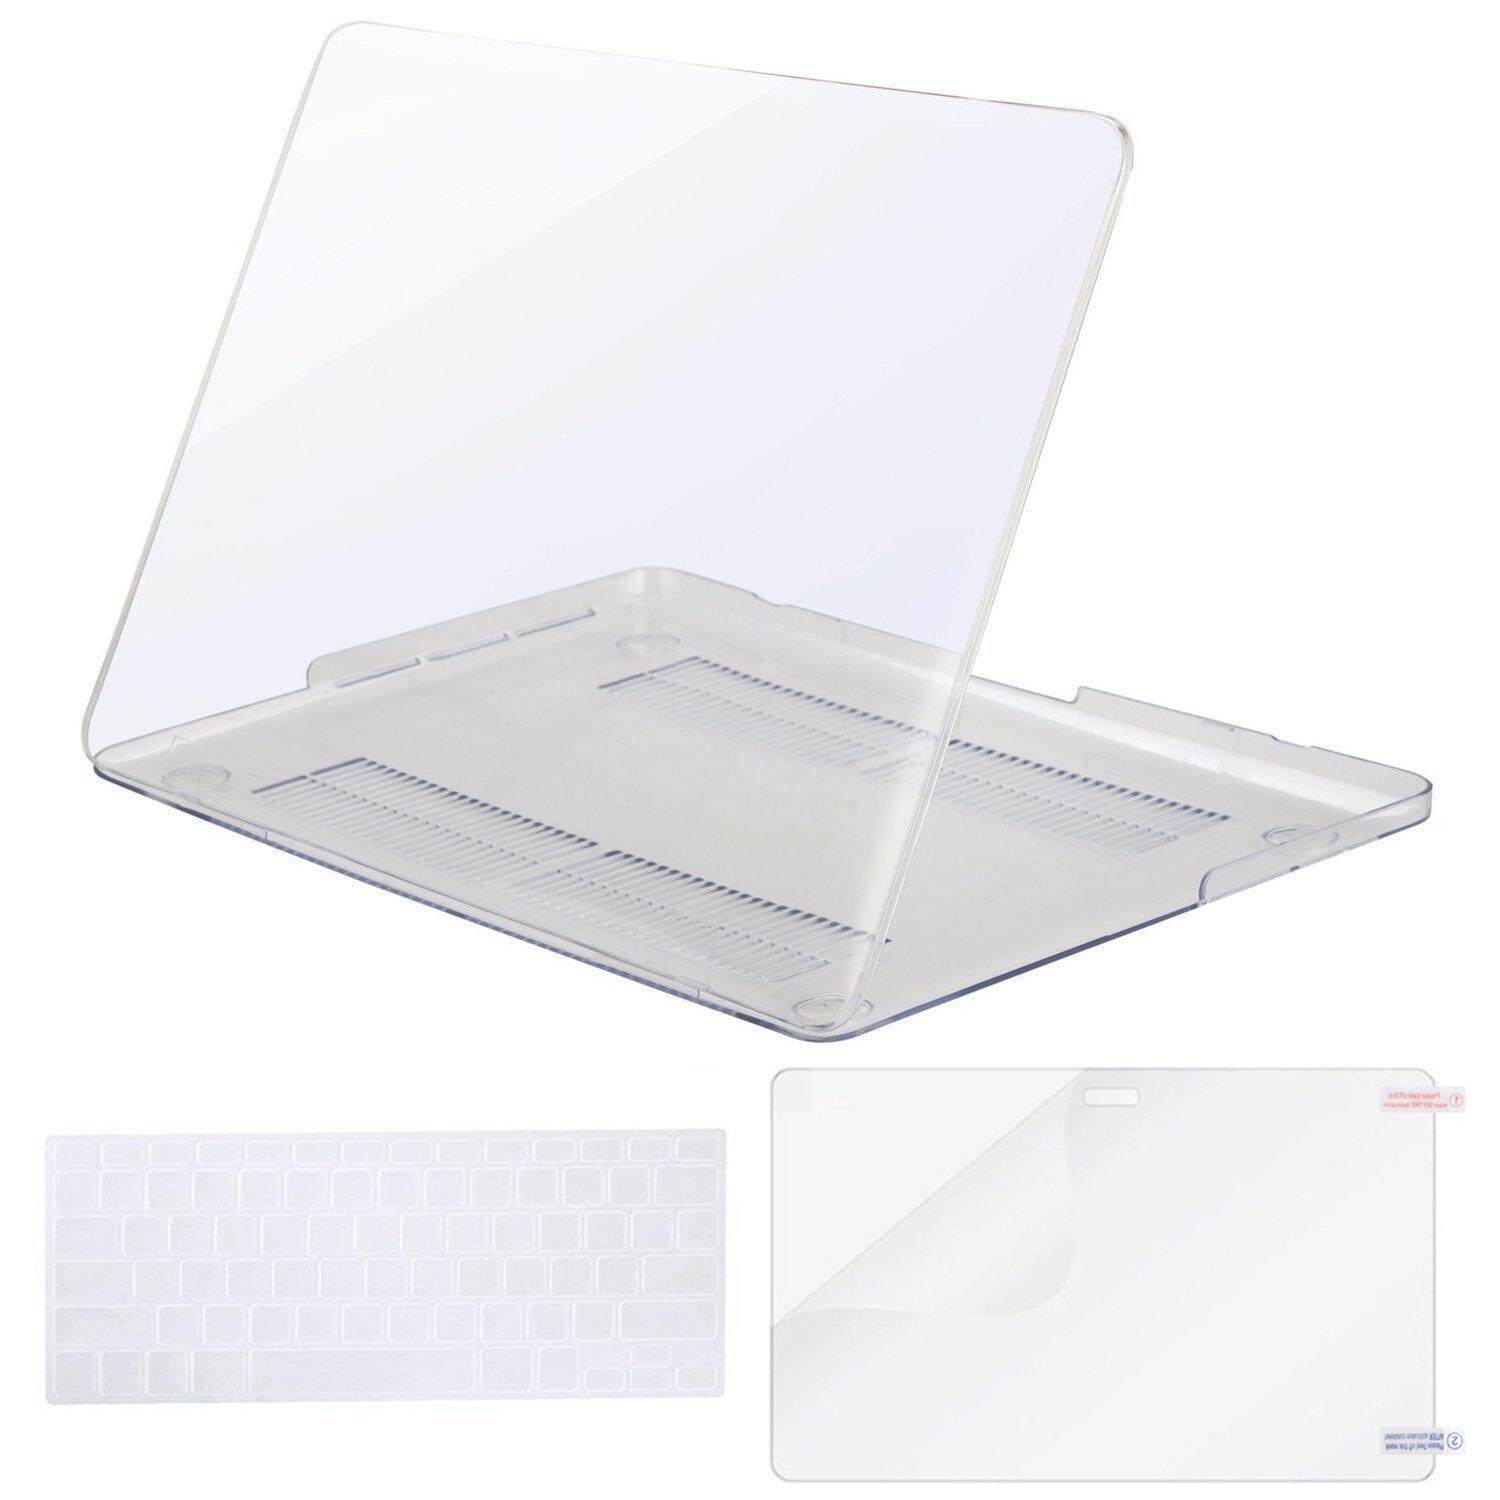 MacBook Plastic Hard Case Shell with Keyboard Cover with Screen Protector Only Compatible Macbook Pro 15 NO CD ROM(Model:A1398)Retina, 15 inch, Mid 2012/2013/2014/Mid 2015